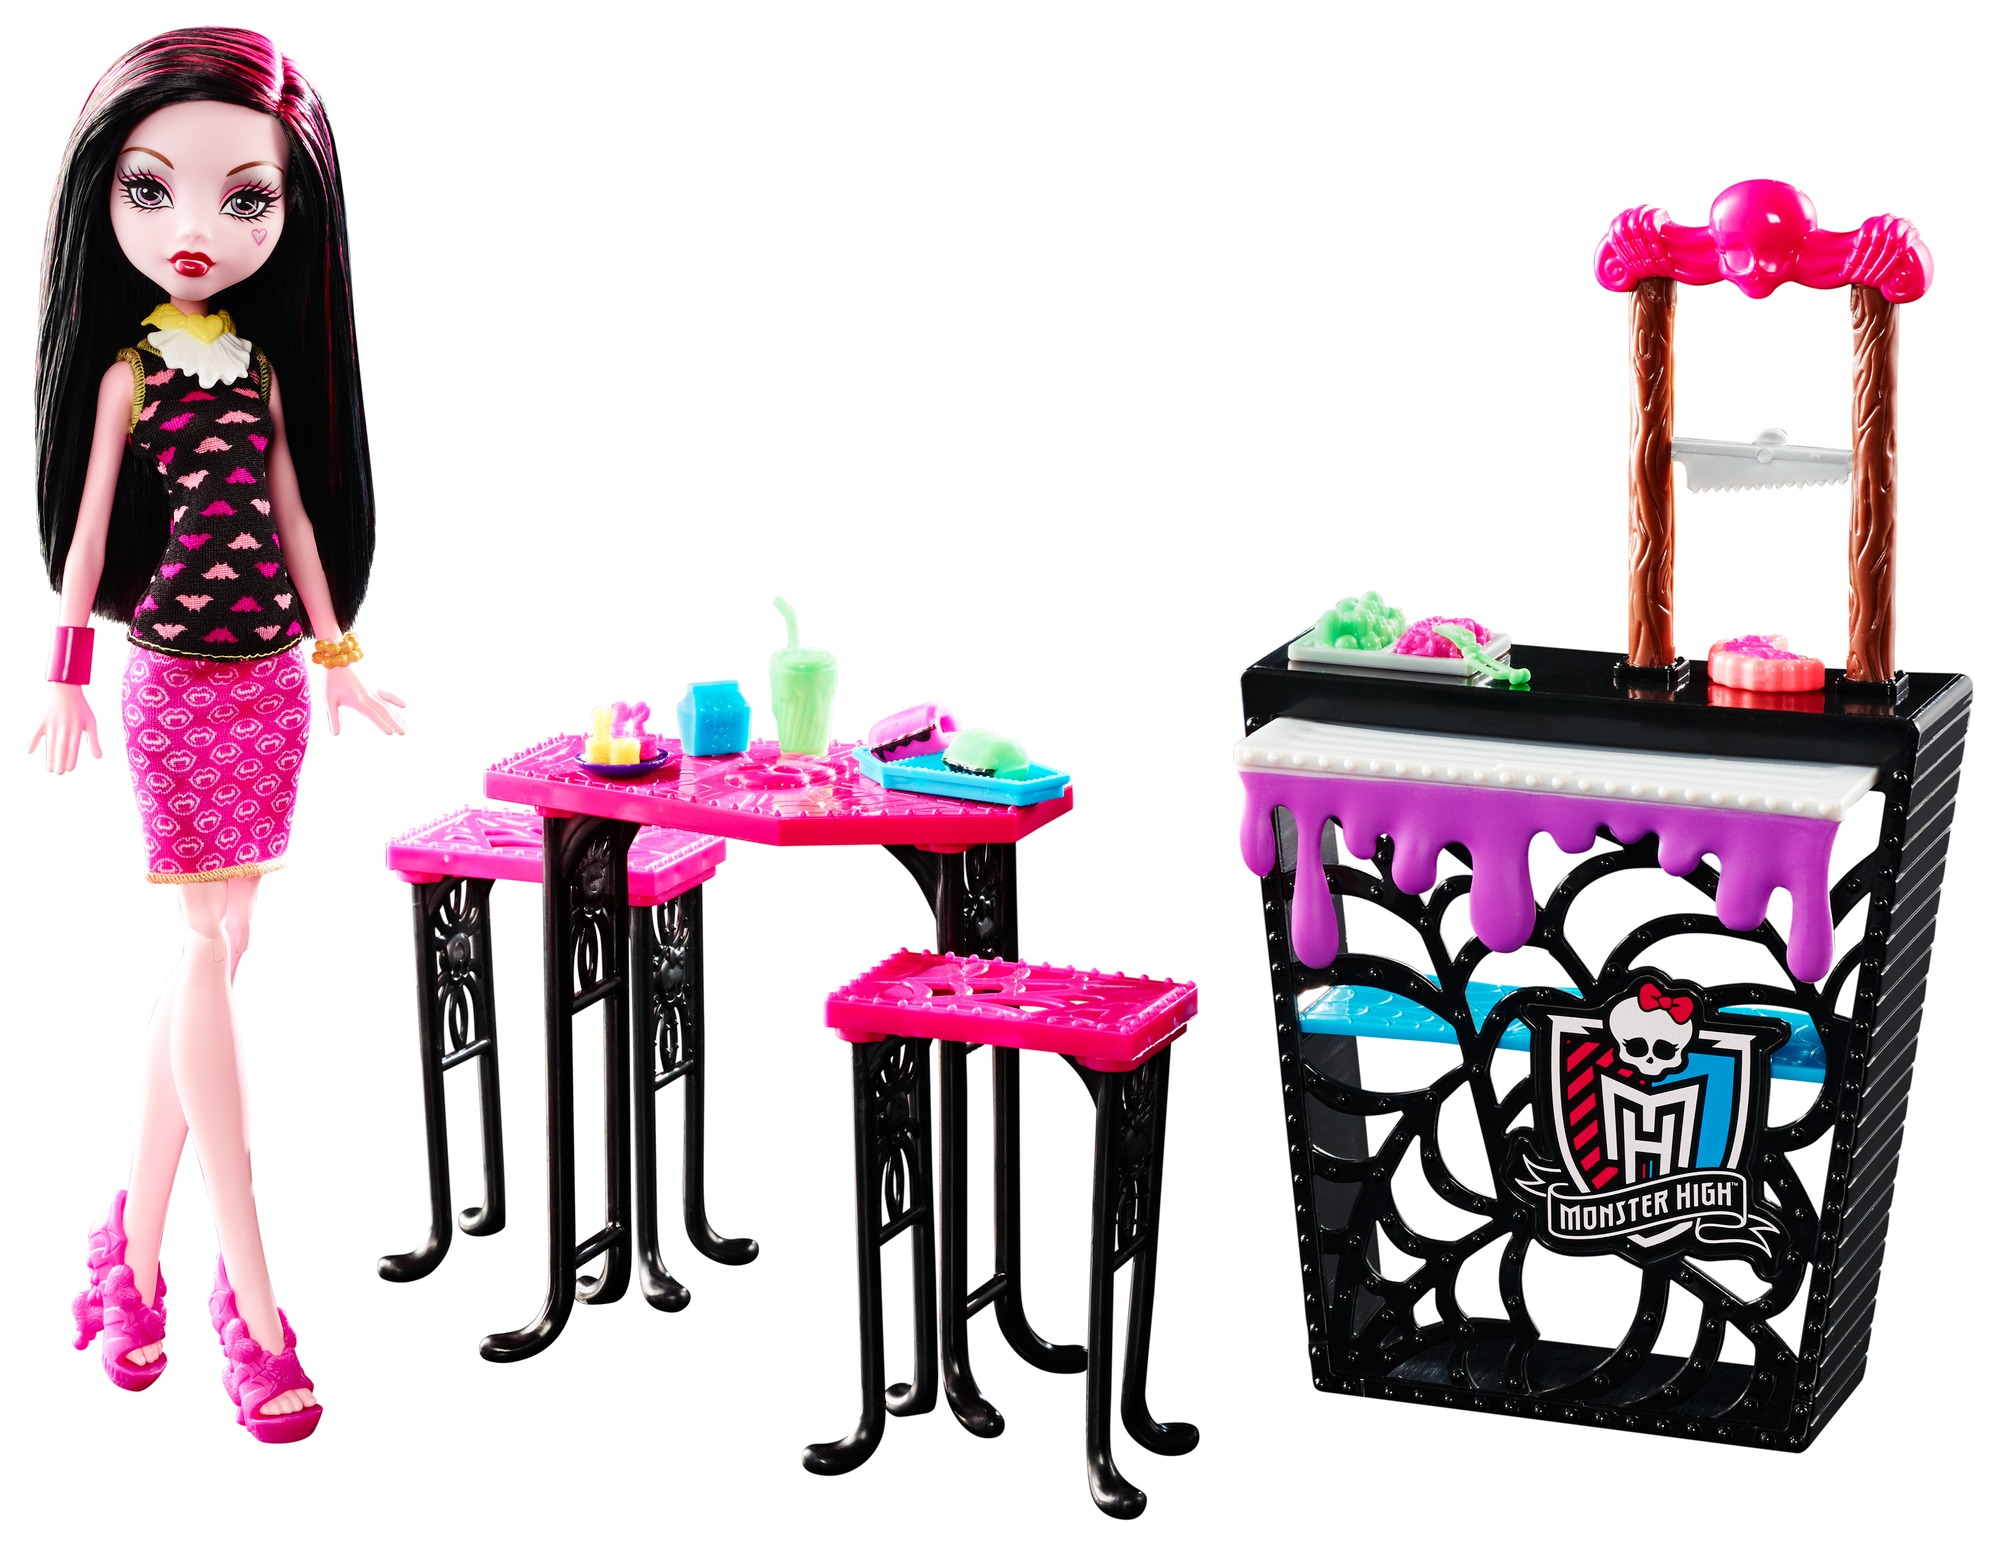 Monster High Beast Bites Cafe Draculaura Doll Playset by Mattel